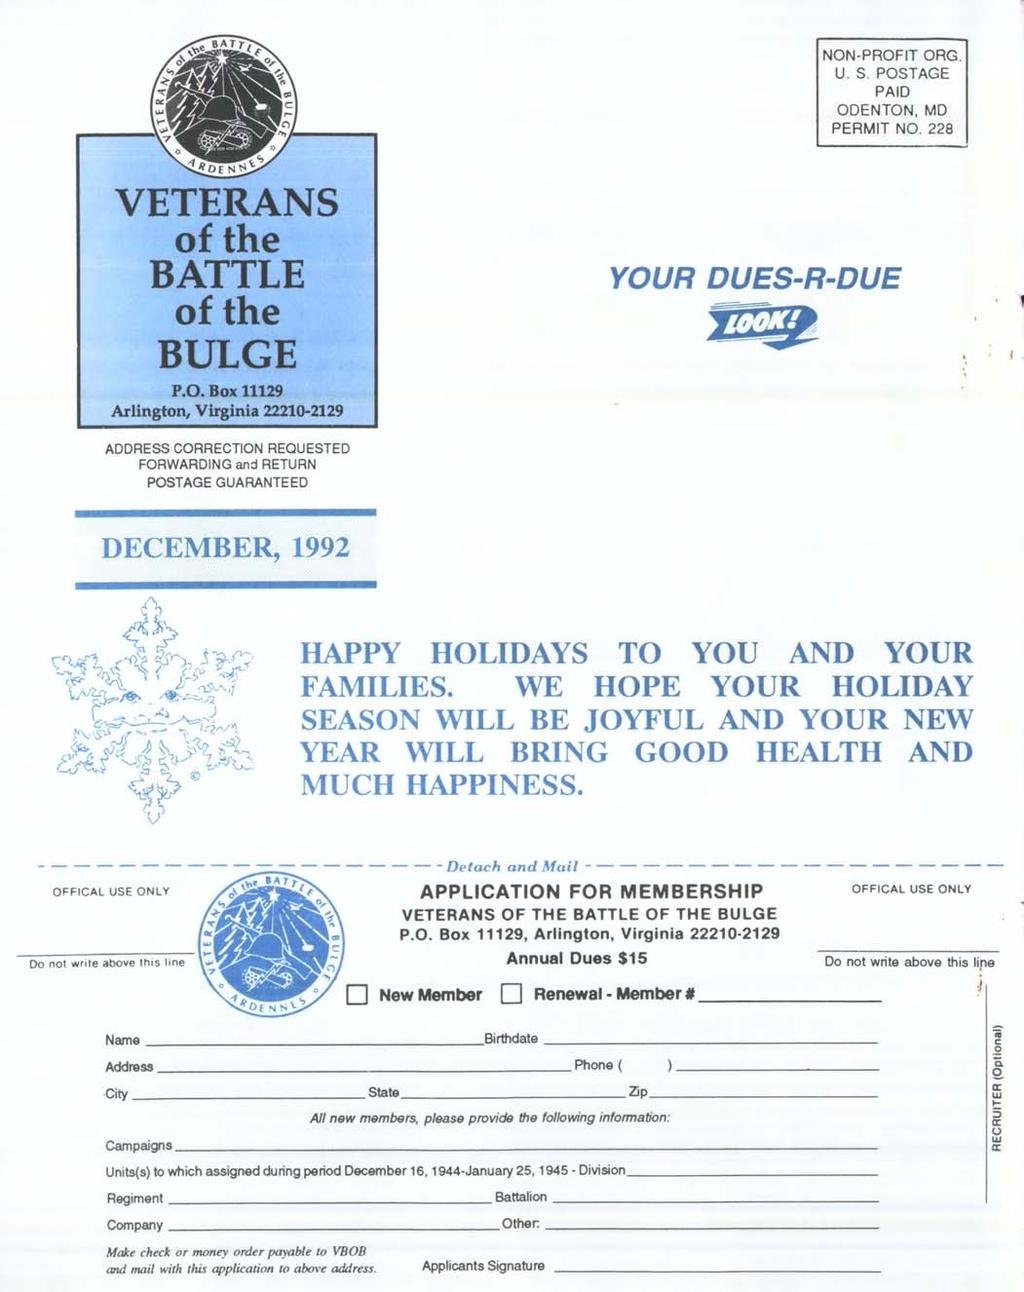 NON-PROFIT ORG. U. S. POSTAGE PAID ODENTON, MD PERMIT NO, 228 VETERANS of the BATTLE of the BULGE P.O. Box 11129 Arlington, Virginia 22210-2129 YOUR DUES-R-DUE ADDRESS CORRECTION REQUESTED FORWARDING and RETURN POSTAGE GUARANTEED DECEMBER, 1992 HAPPY HOLIDAYS TO YOU AND YOUR FAMILIES.